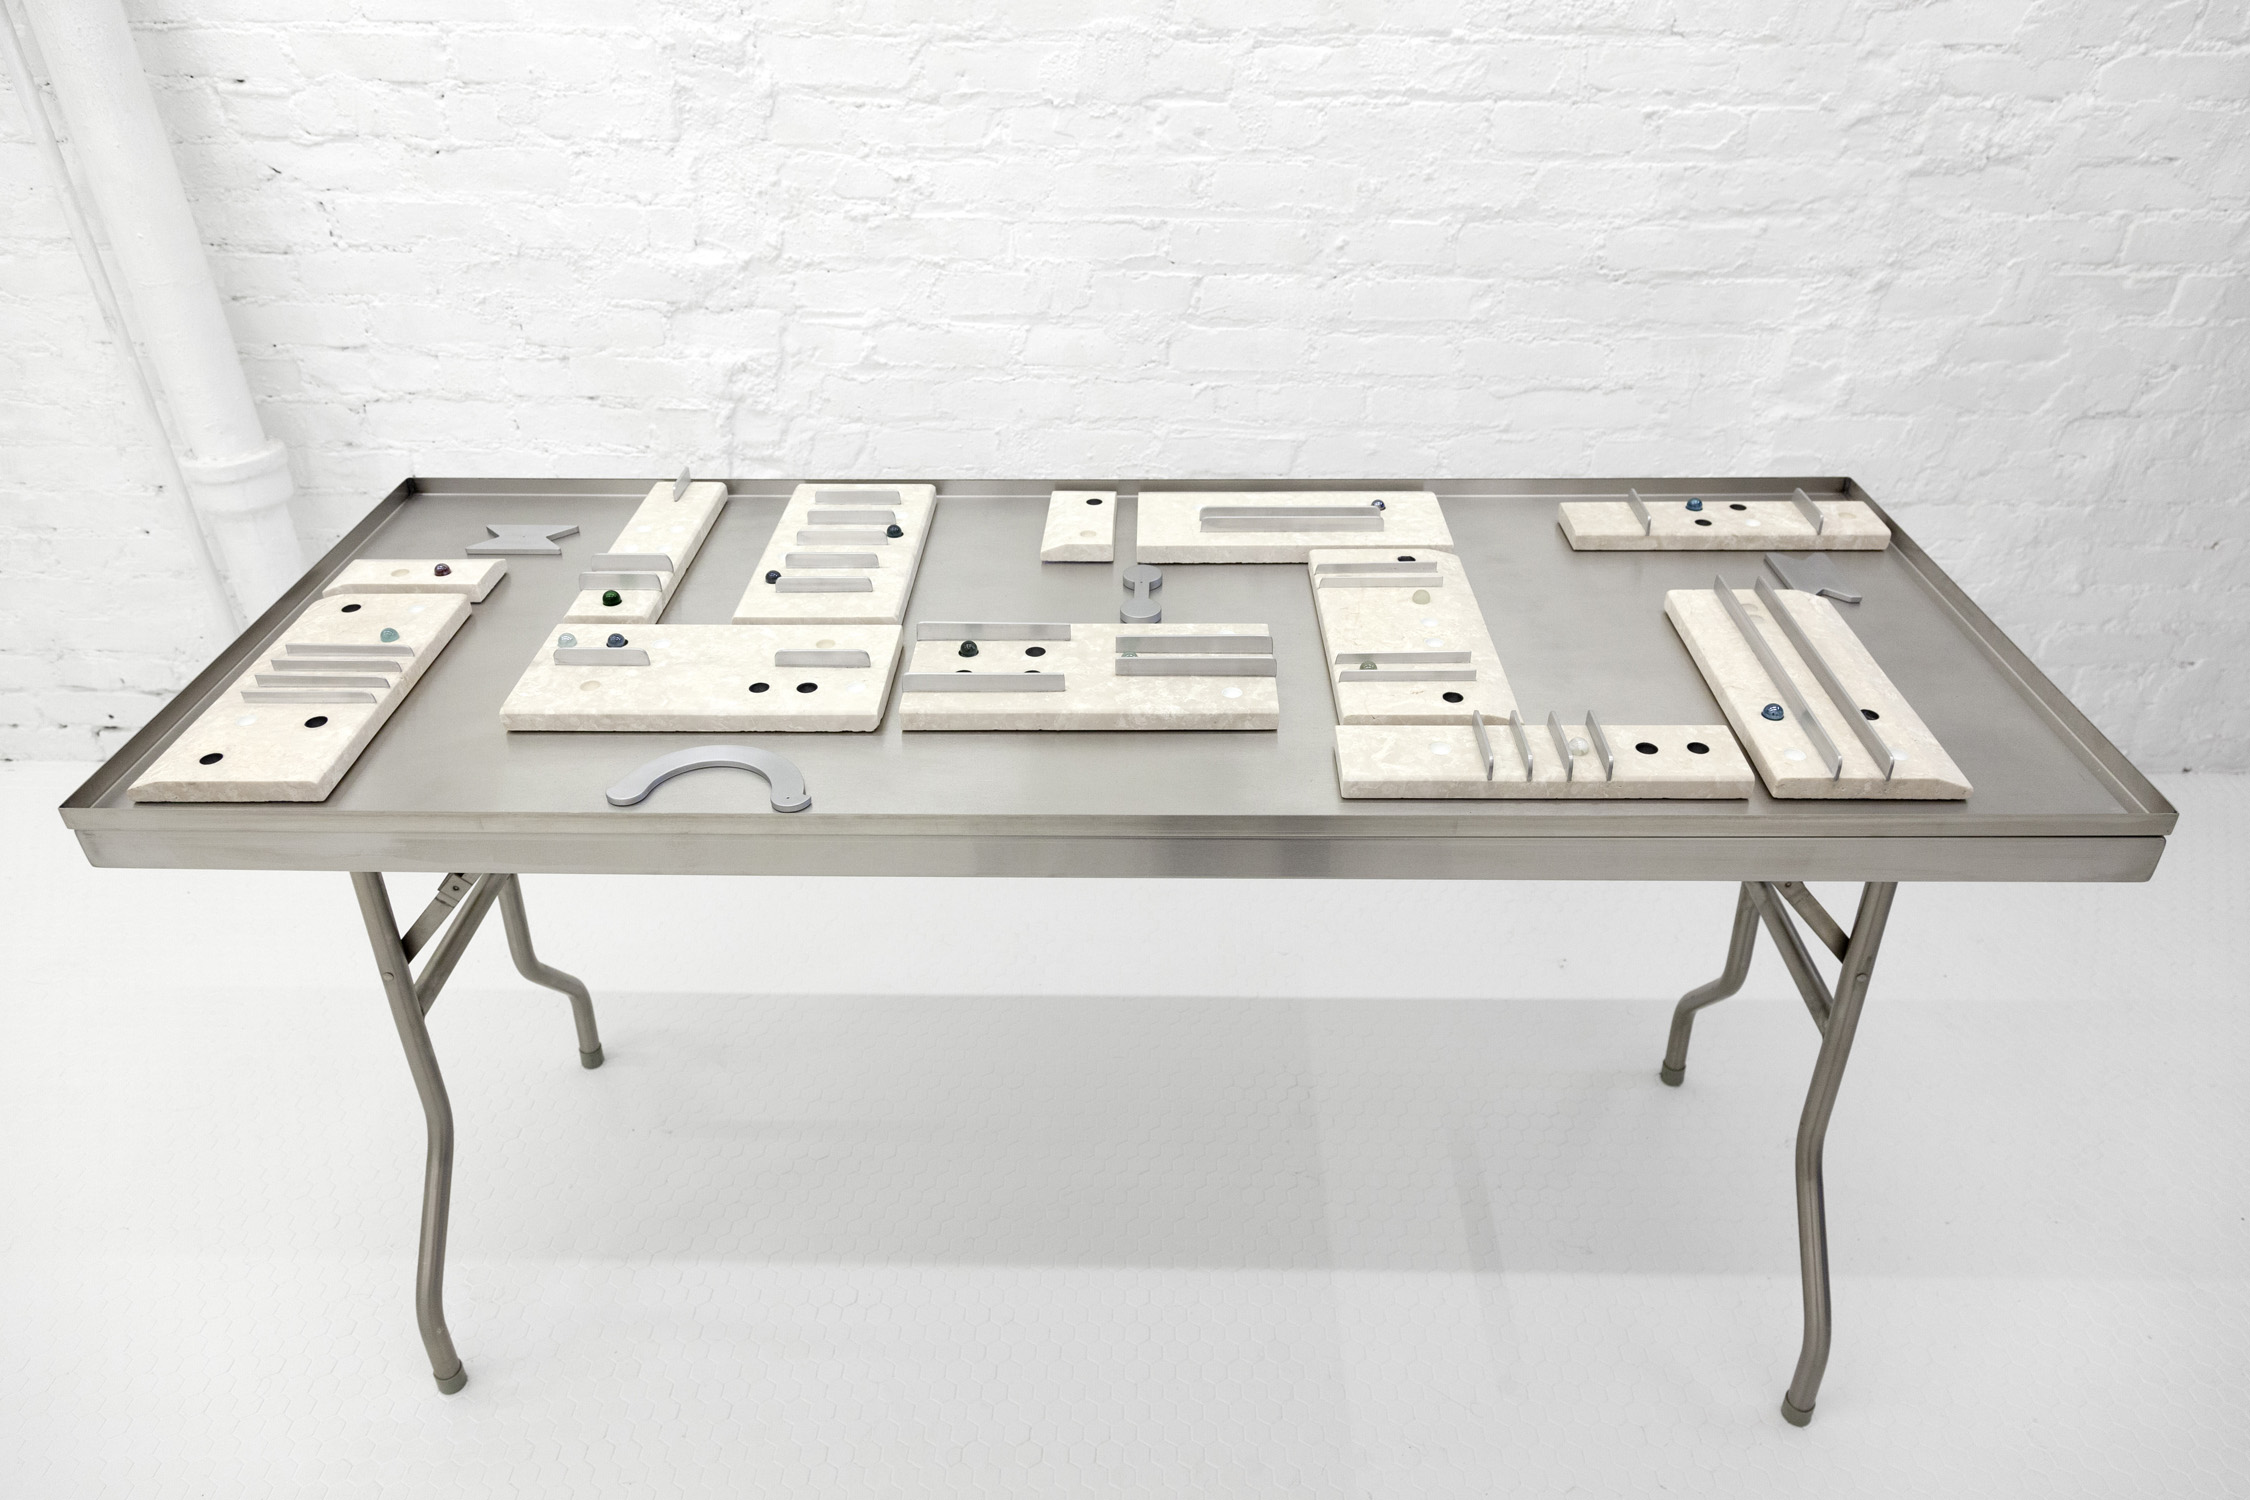 """""""Game Tablet"""" 1-13  Sizes: 1. 12"""" x 5.75"""" x 2"""" 2. 12"""" x 3"""" x 2"""" 3. 5.75"""" x 3"""" x 1"""" Crema marble, aluminum, glass marbles 2019"""